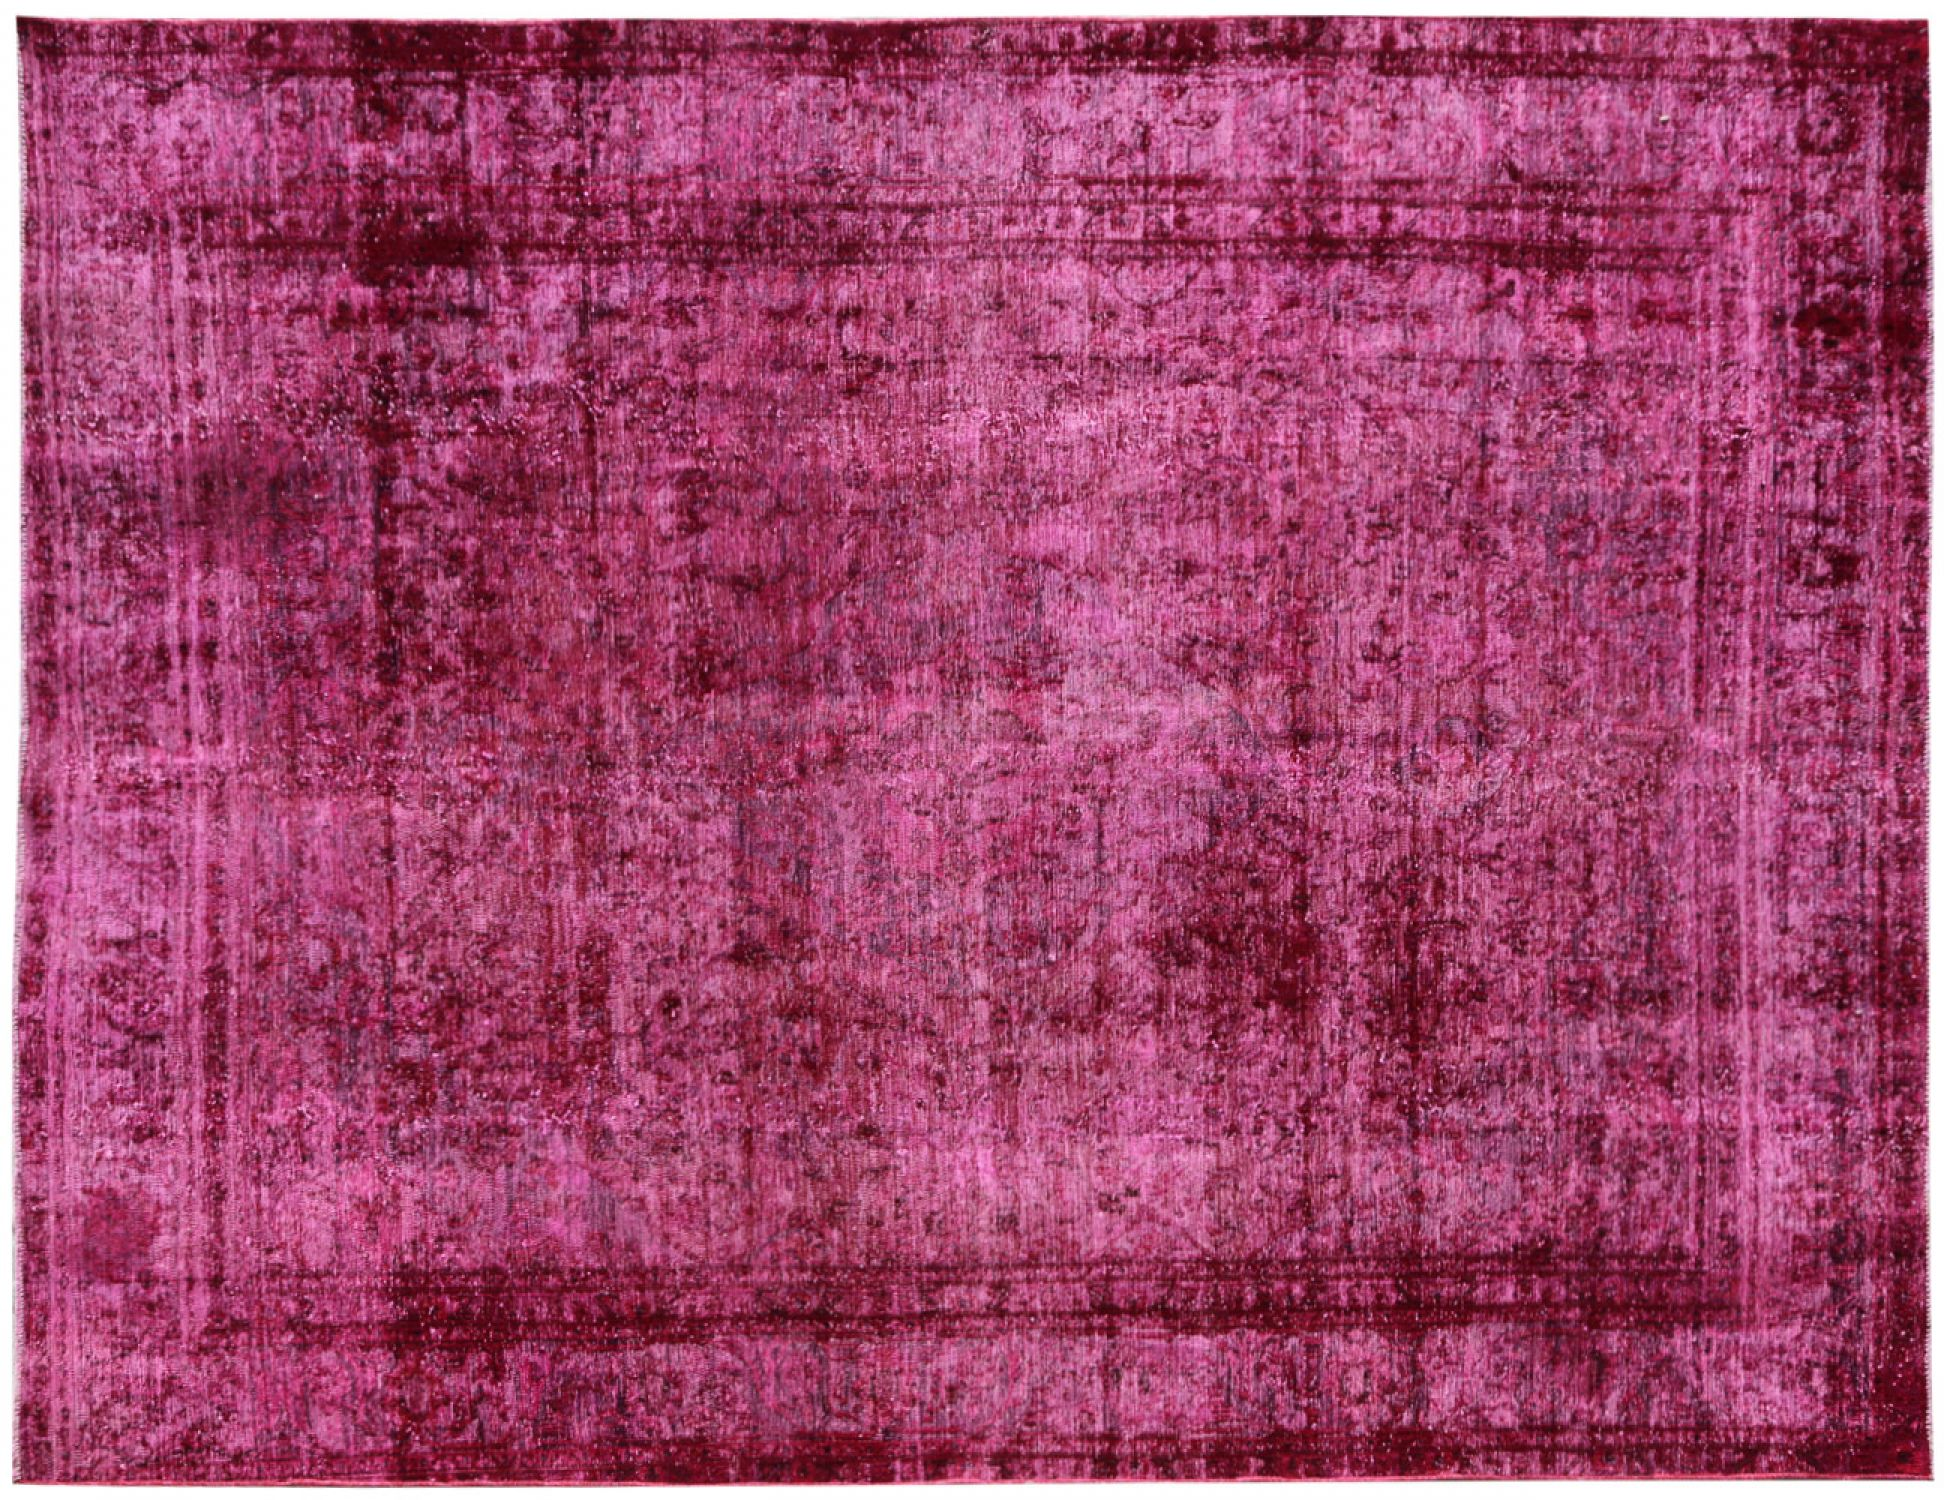 Vintage Carpet  purple <br/>370 x 270 cm